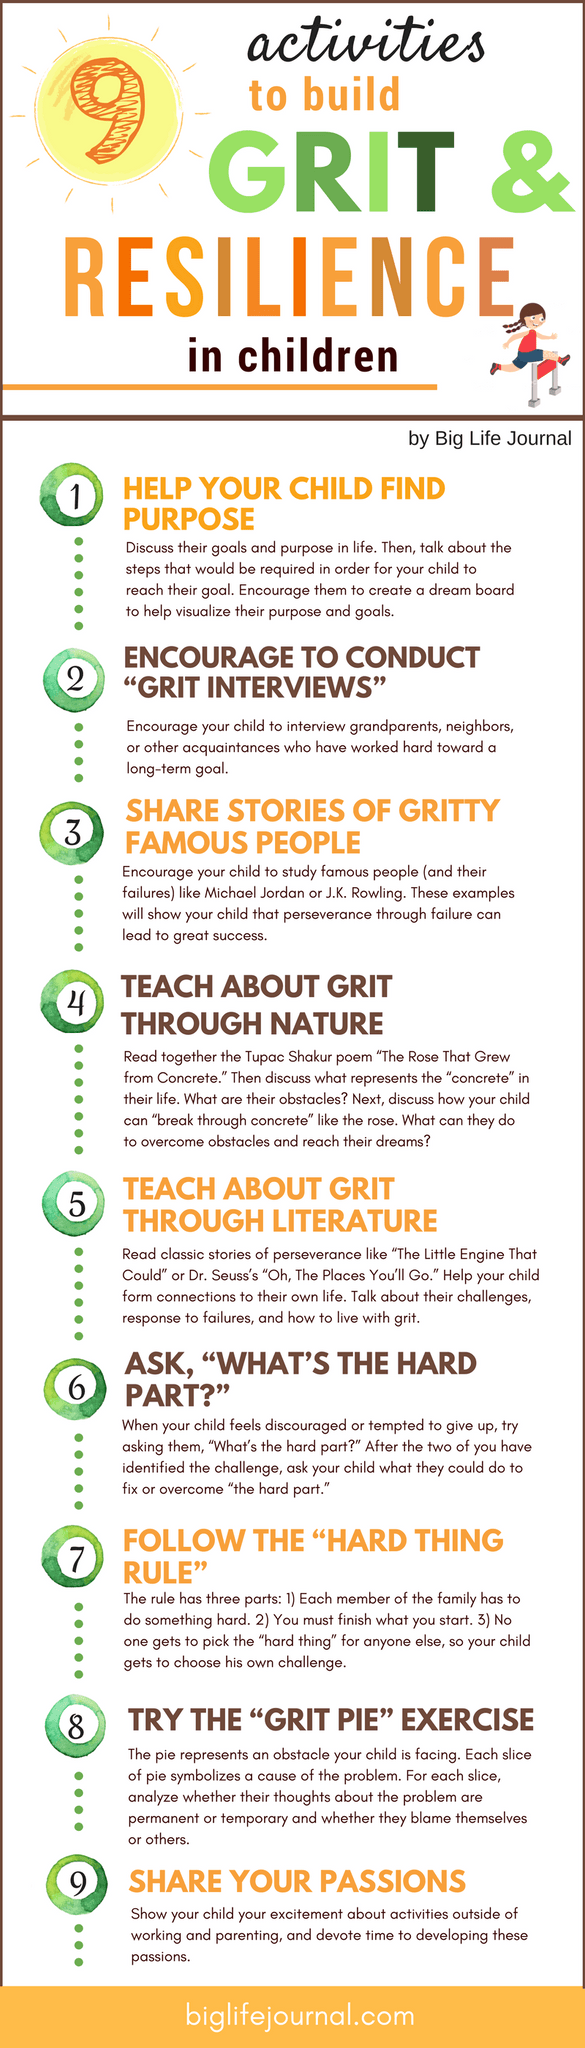 A list of 9 activities to build grit and resilience in children at home or in classroom.